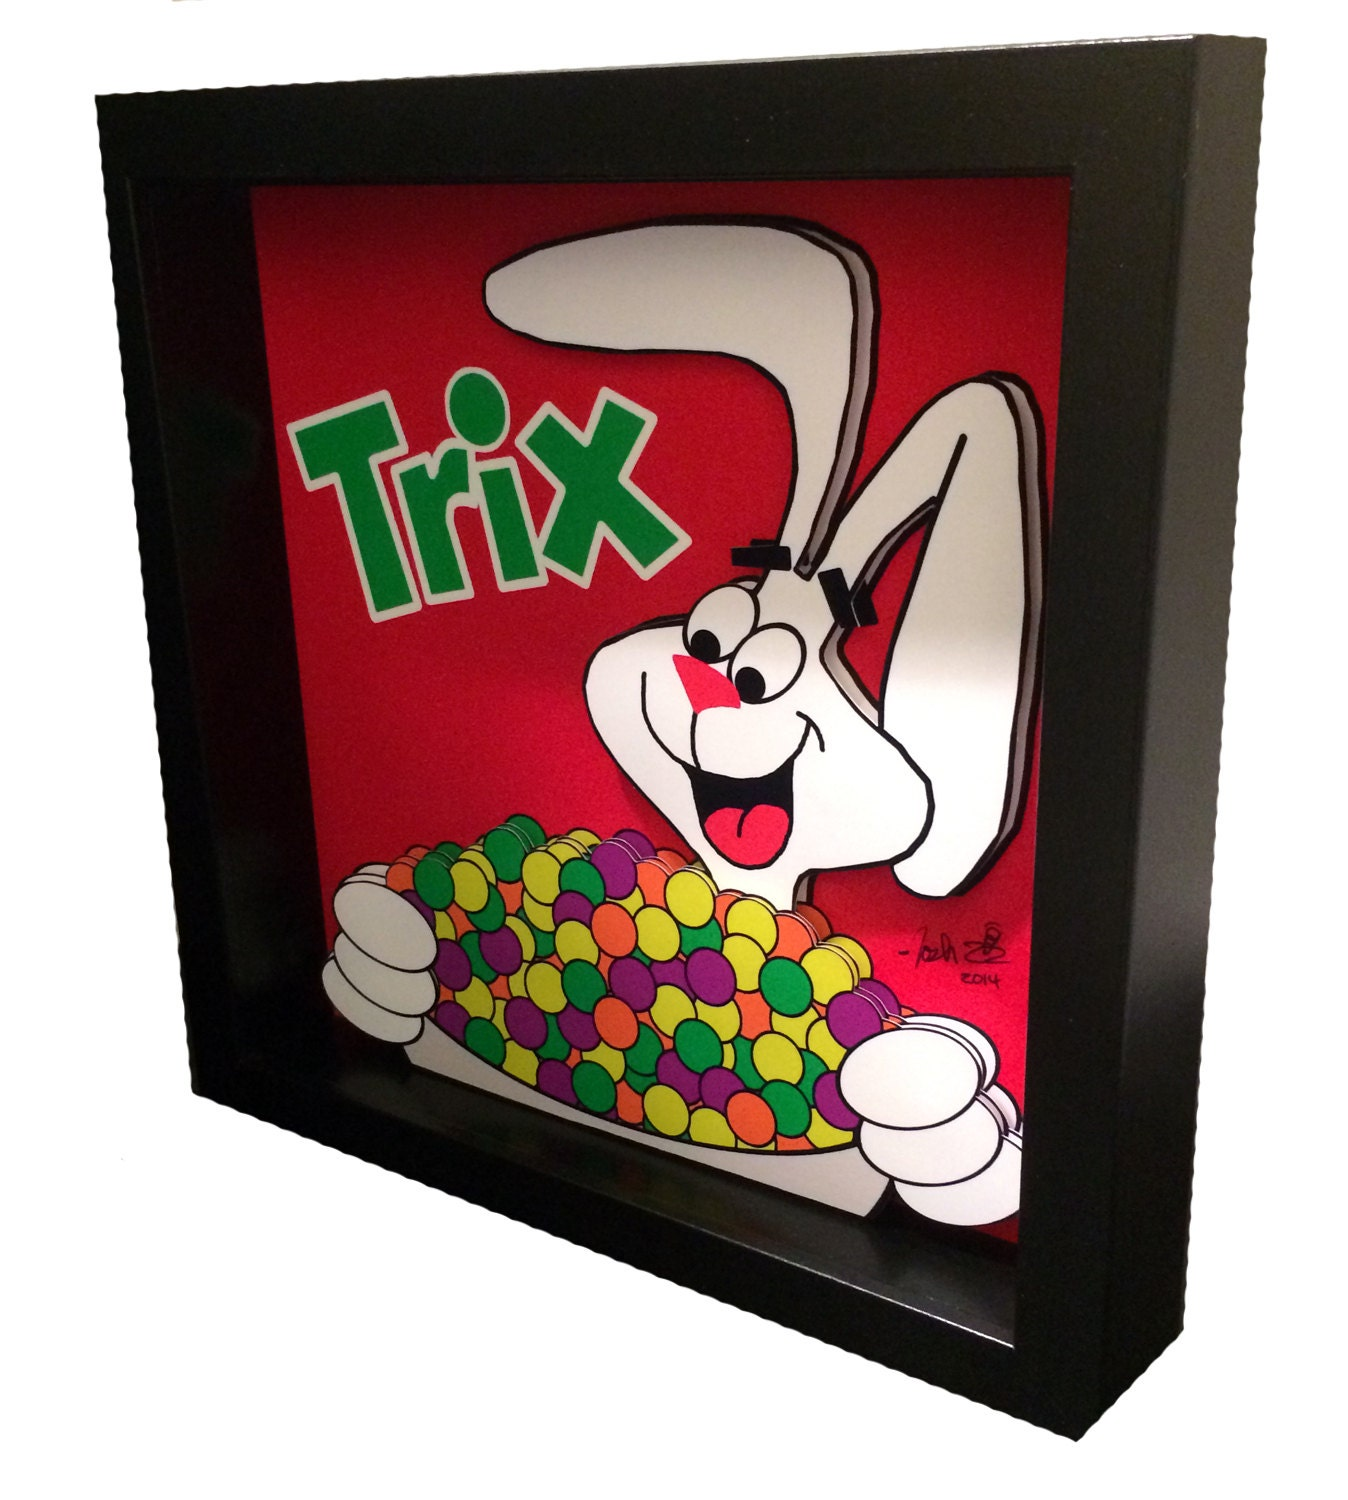 Kitchen Diorama Made Of Cereal Box: Trix Rabbit Cereal Box Art Funny Kitchen Art Breakfast Cereal